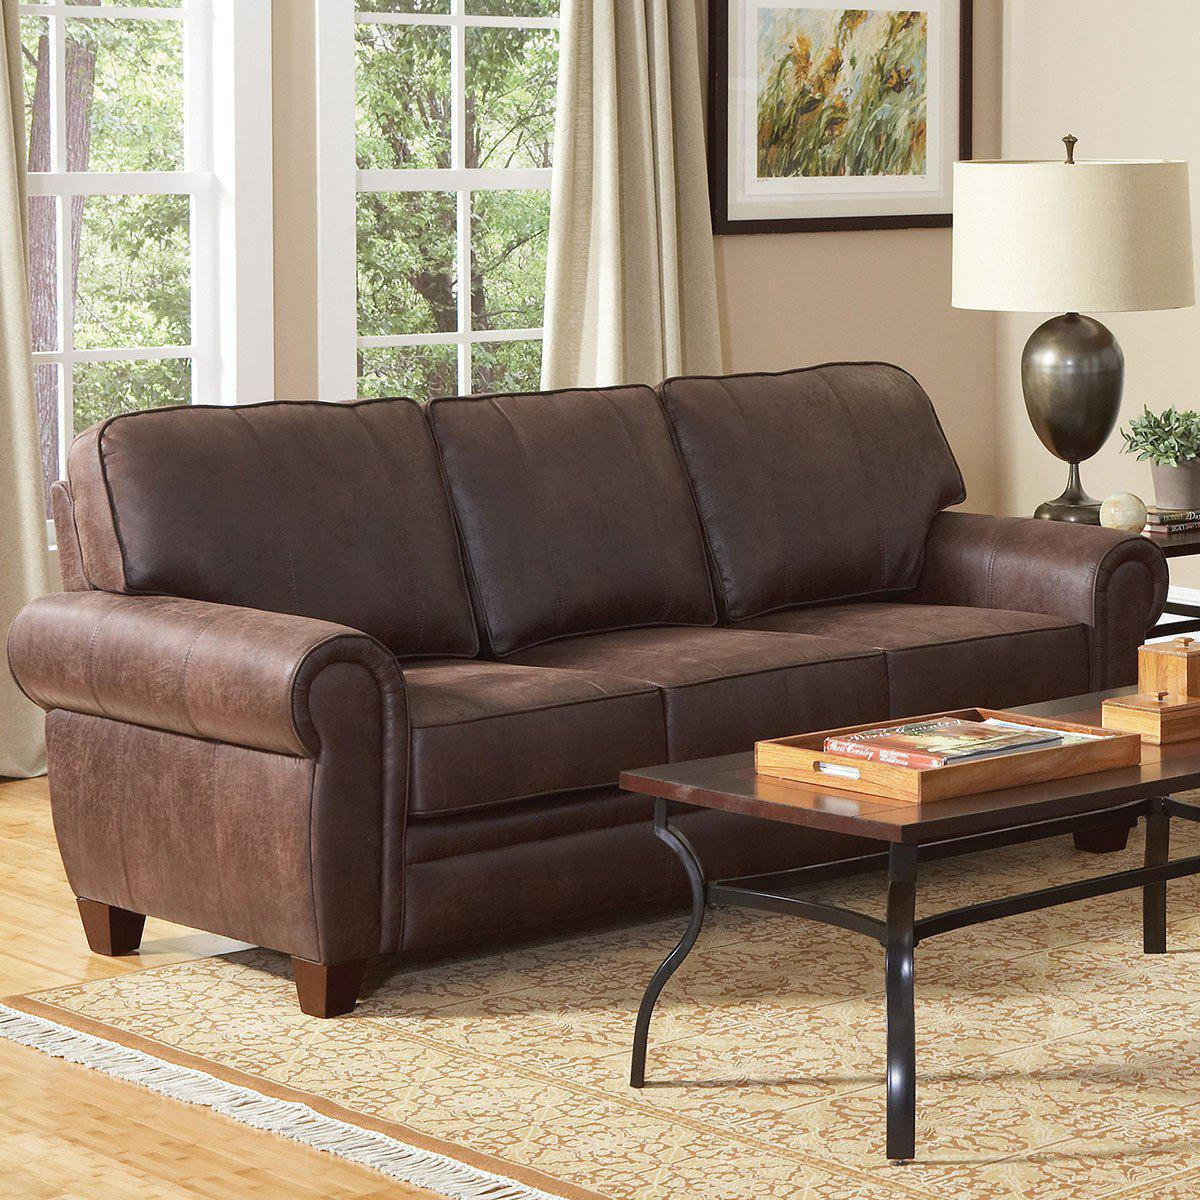 Bentley Sofa-sofas-Jennifer Furniture